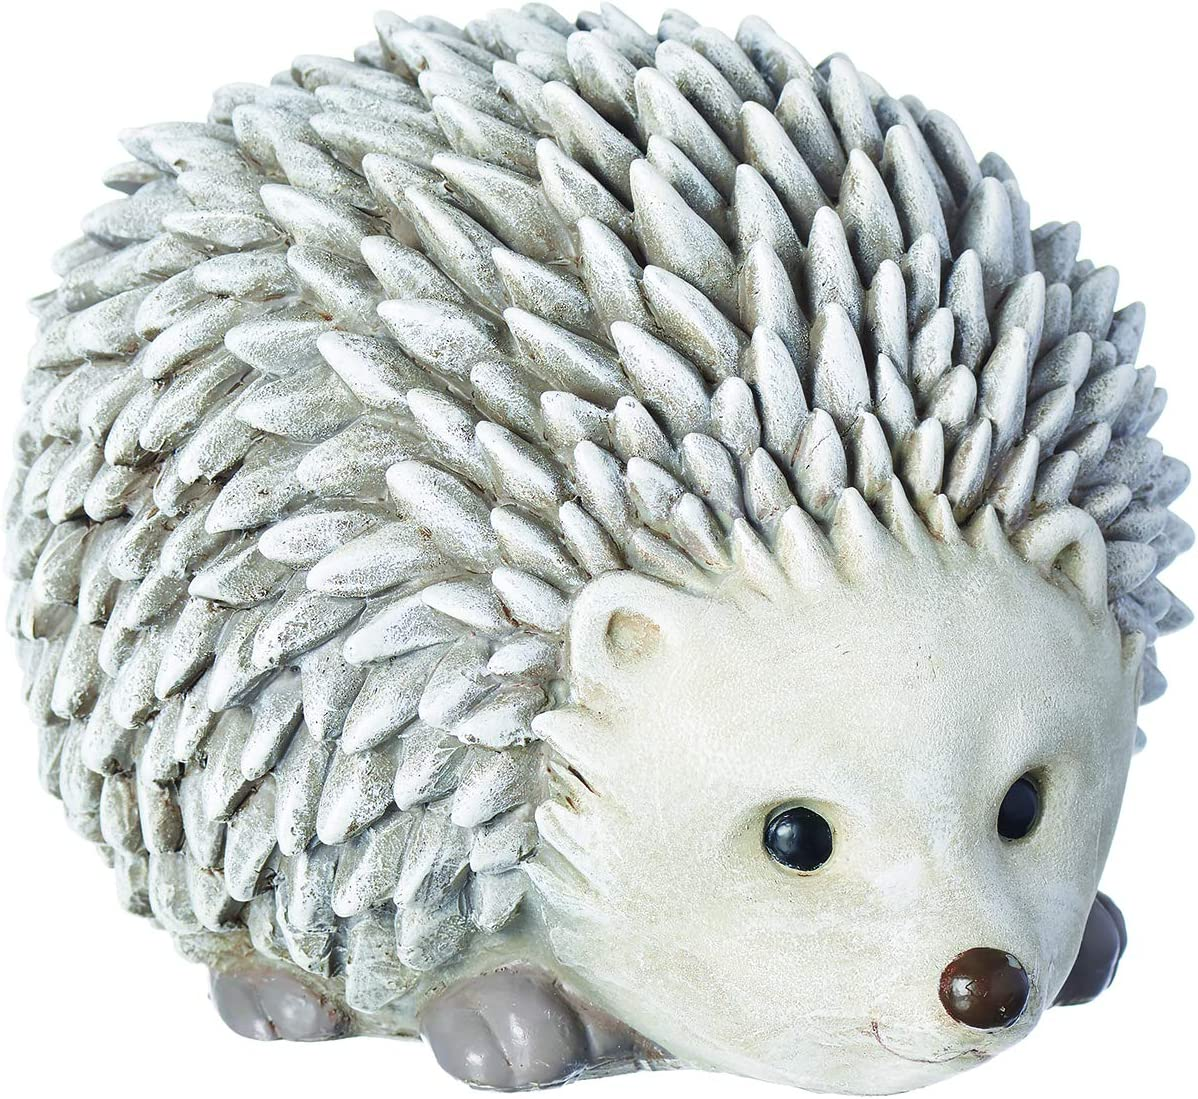 """Roman - Hedgehog Bluetooth Speaker Pudgy Pal, 6.25"""" H, Garden Collection, Resin and Stone, Decorative, Home Outdoor and Indoor Decor, Durable, Long Lasting"""